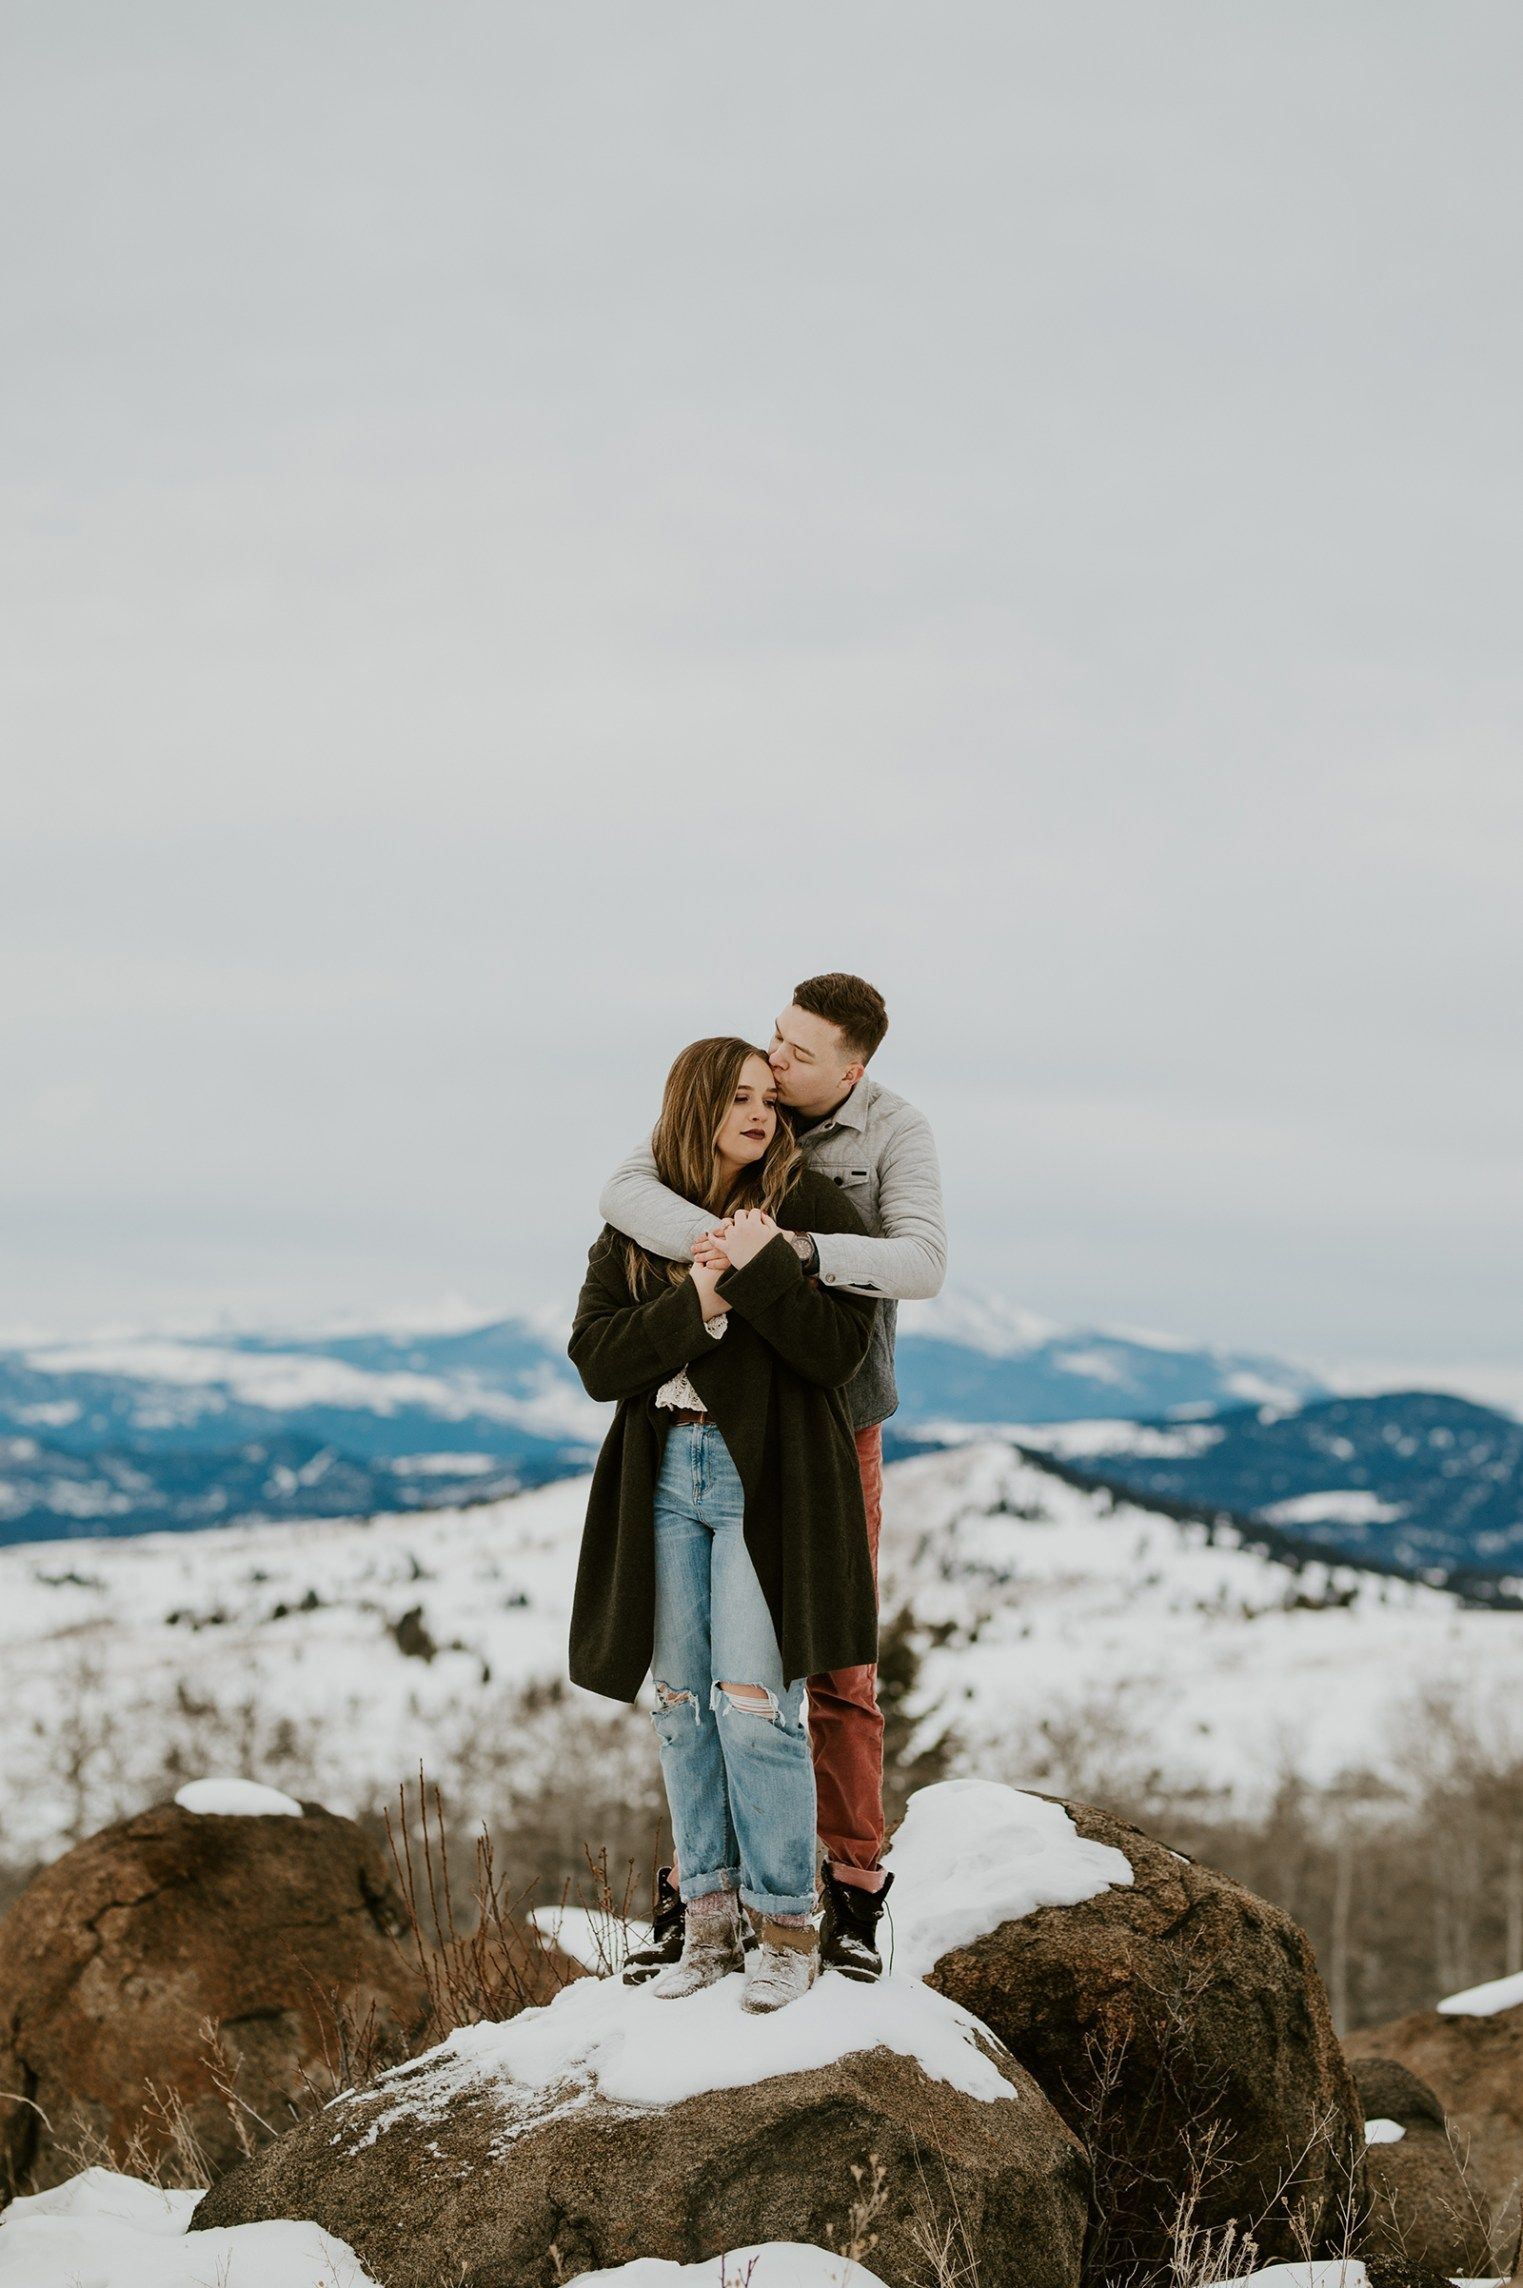 Masterminds Winter Engagement Session   Winter engagement ...